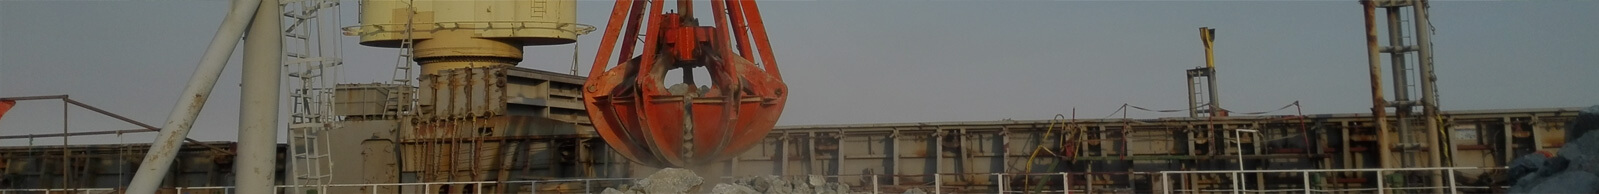 Dredging Electric Hydraulic Clamshell Grab